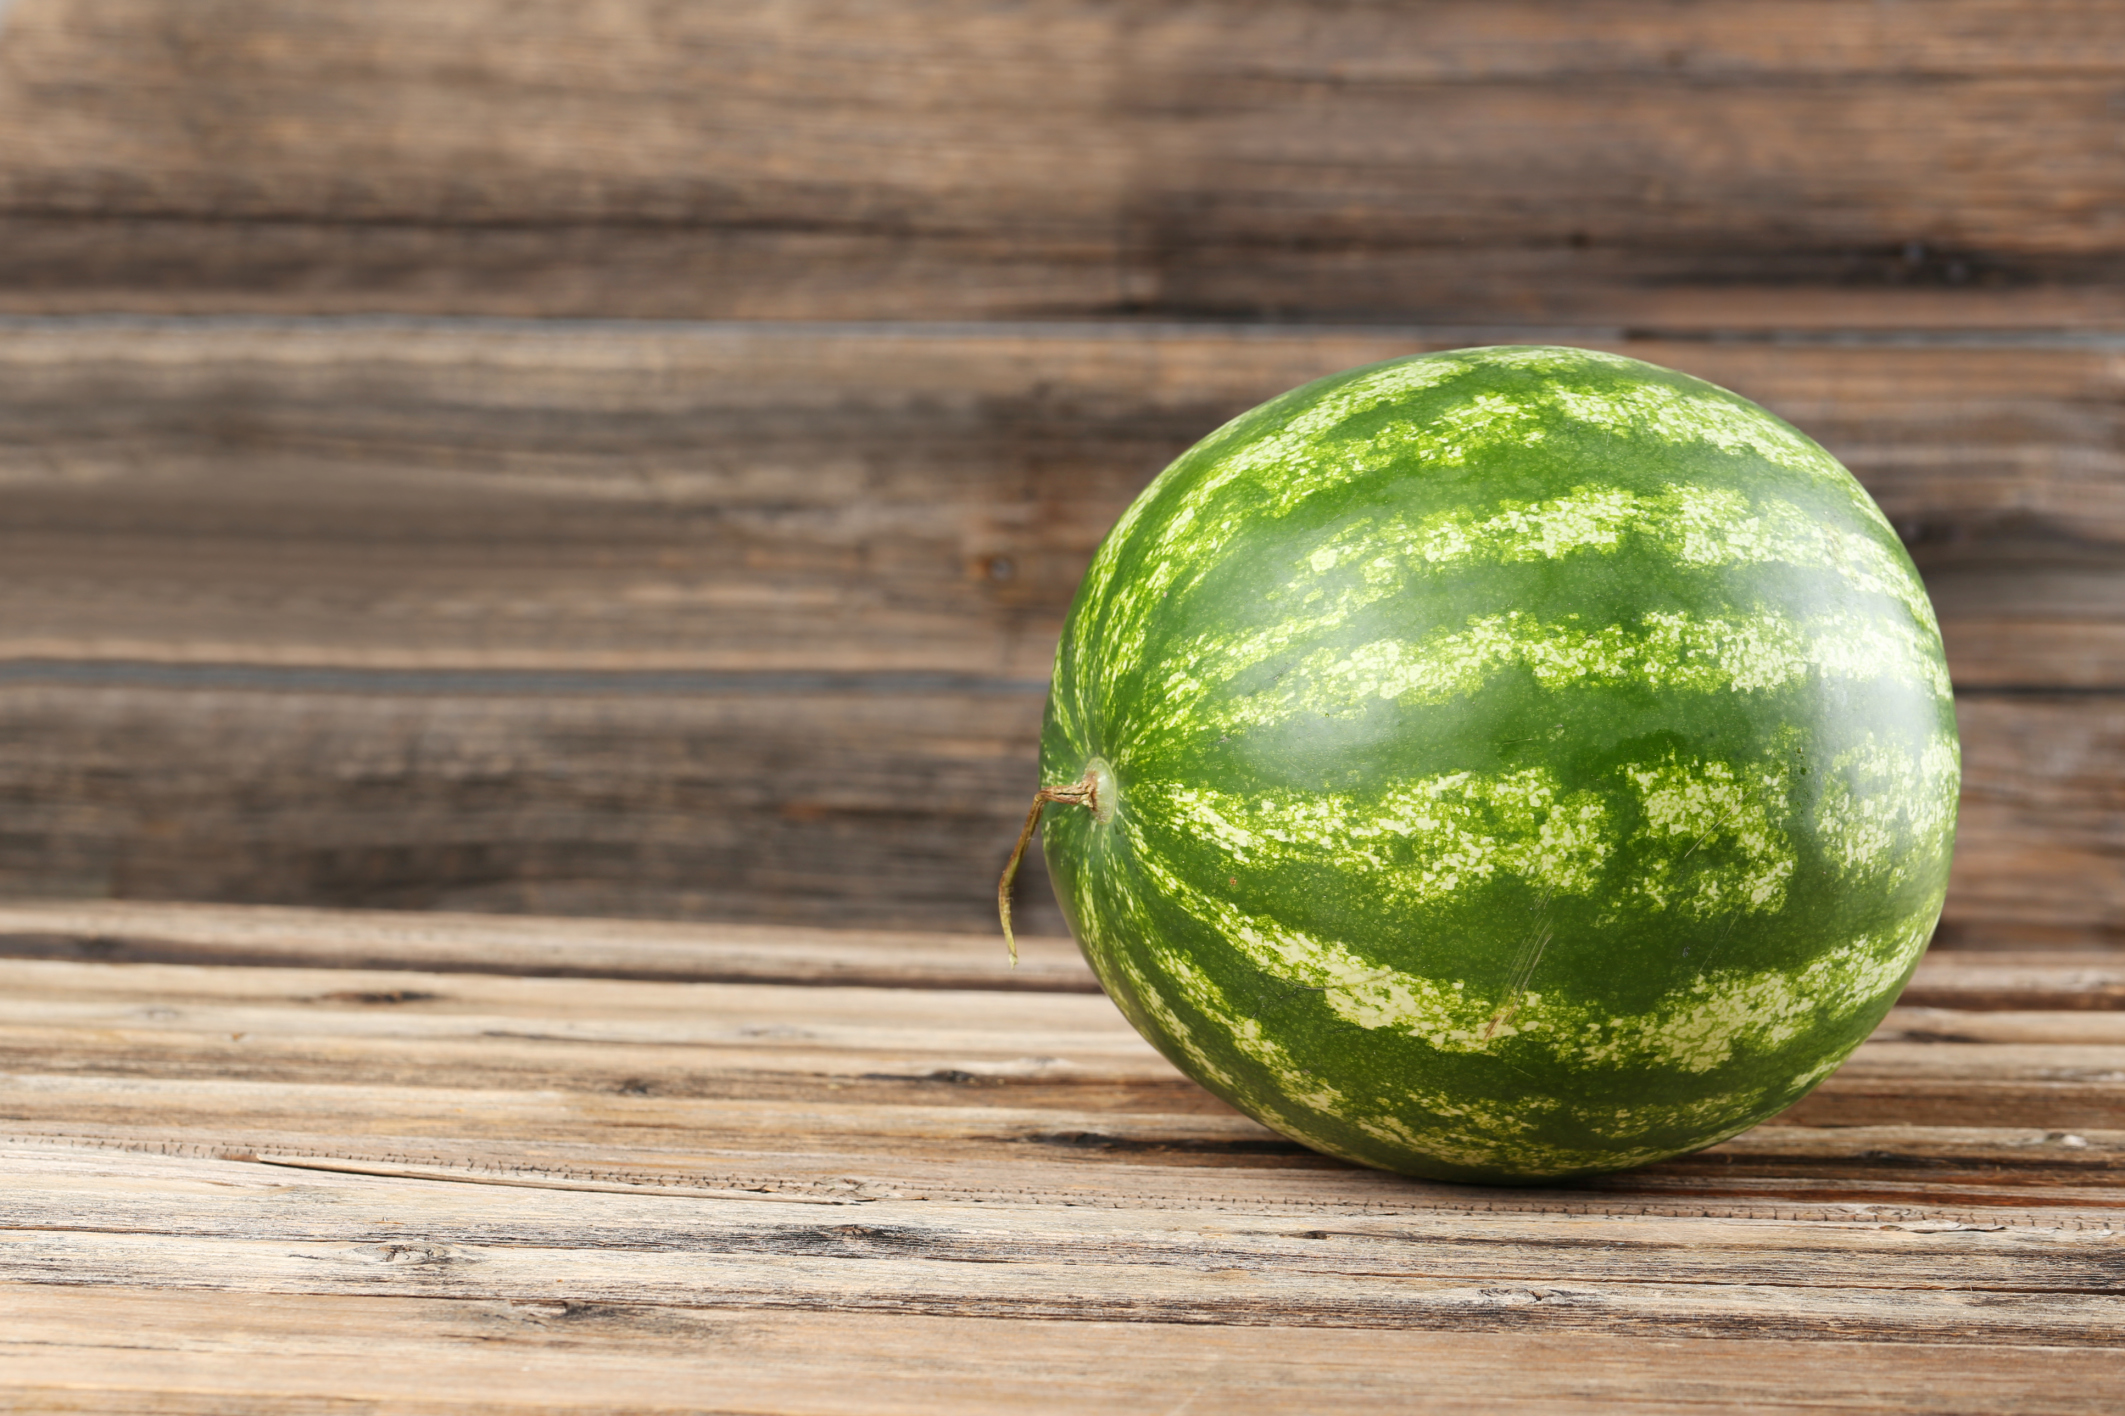 Lots of people watched a watermelon explode on Facebook